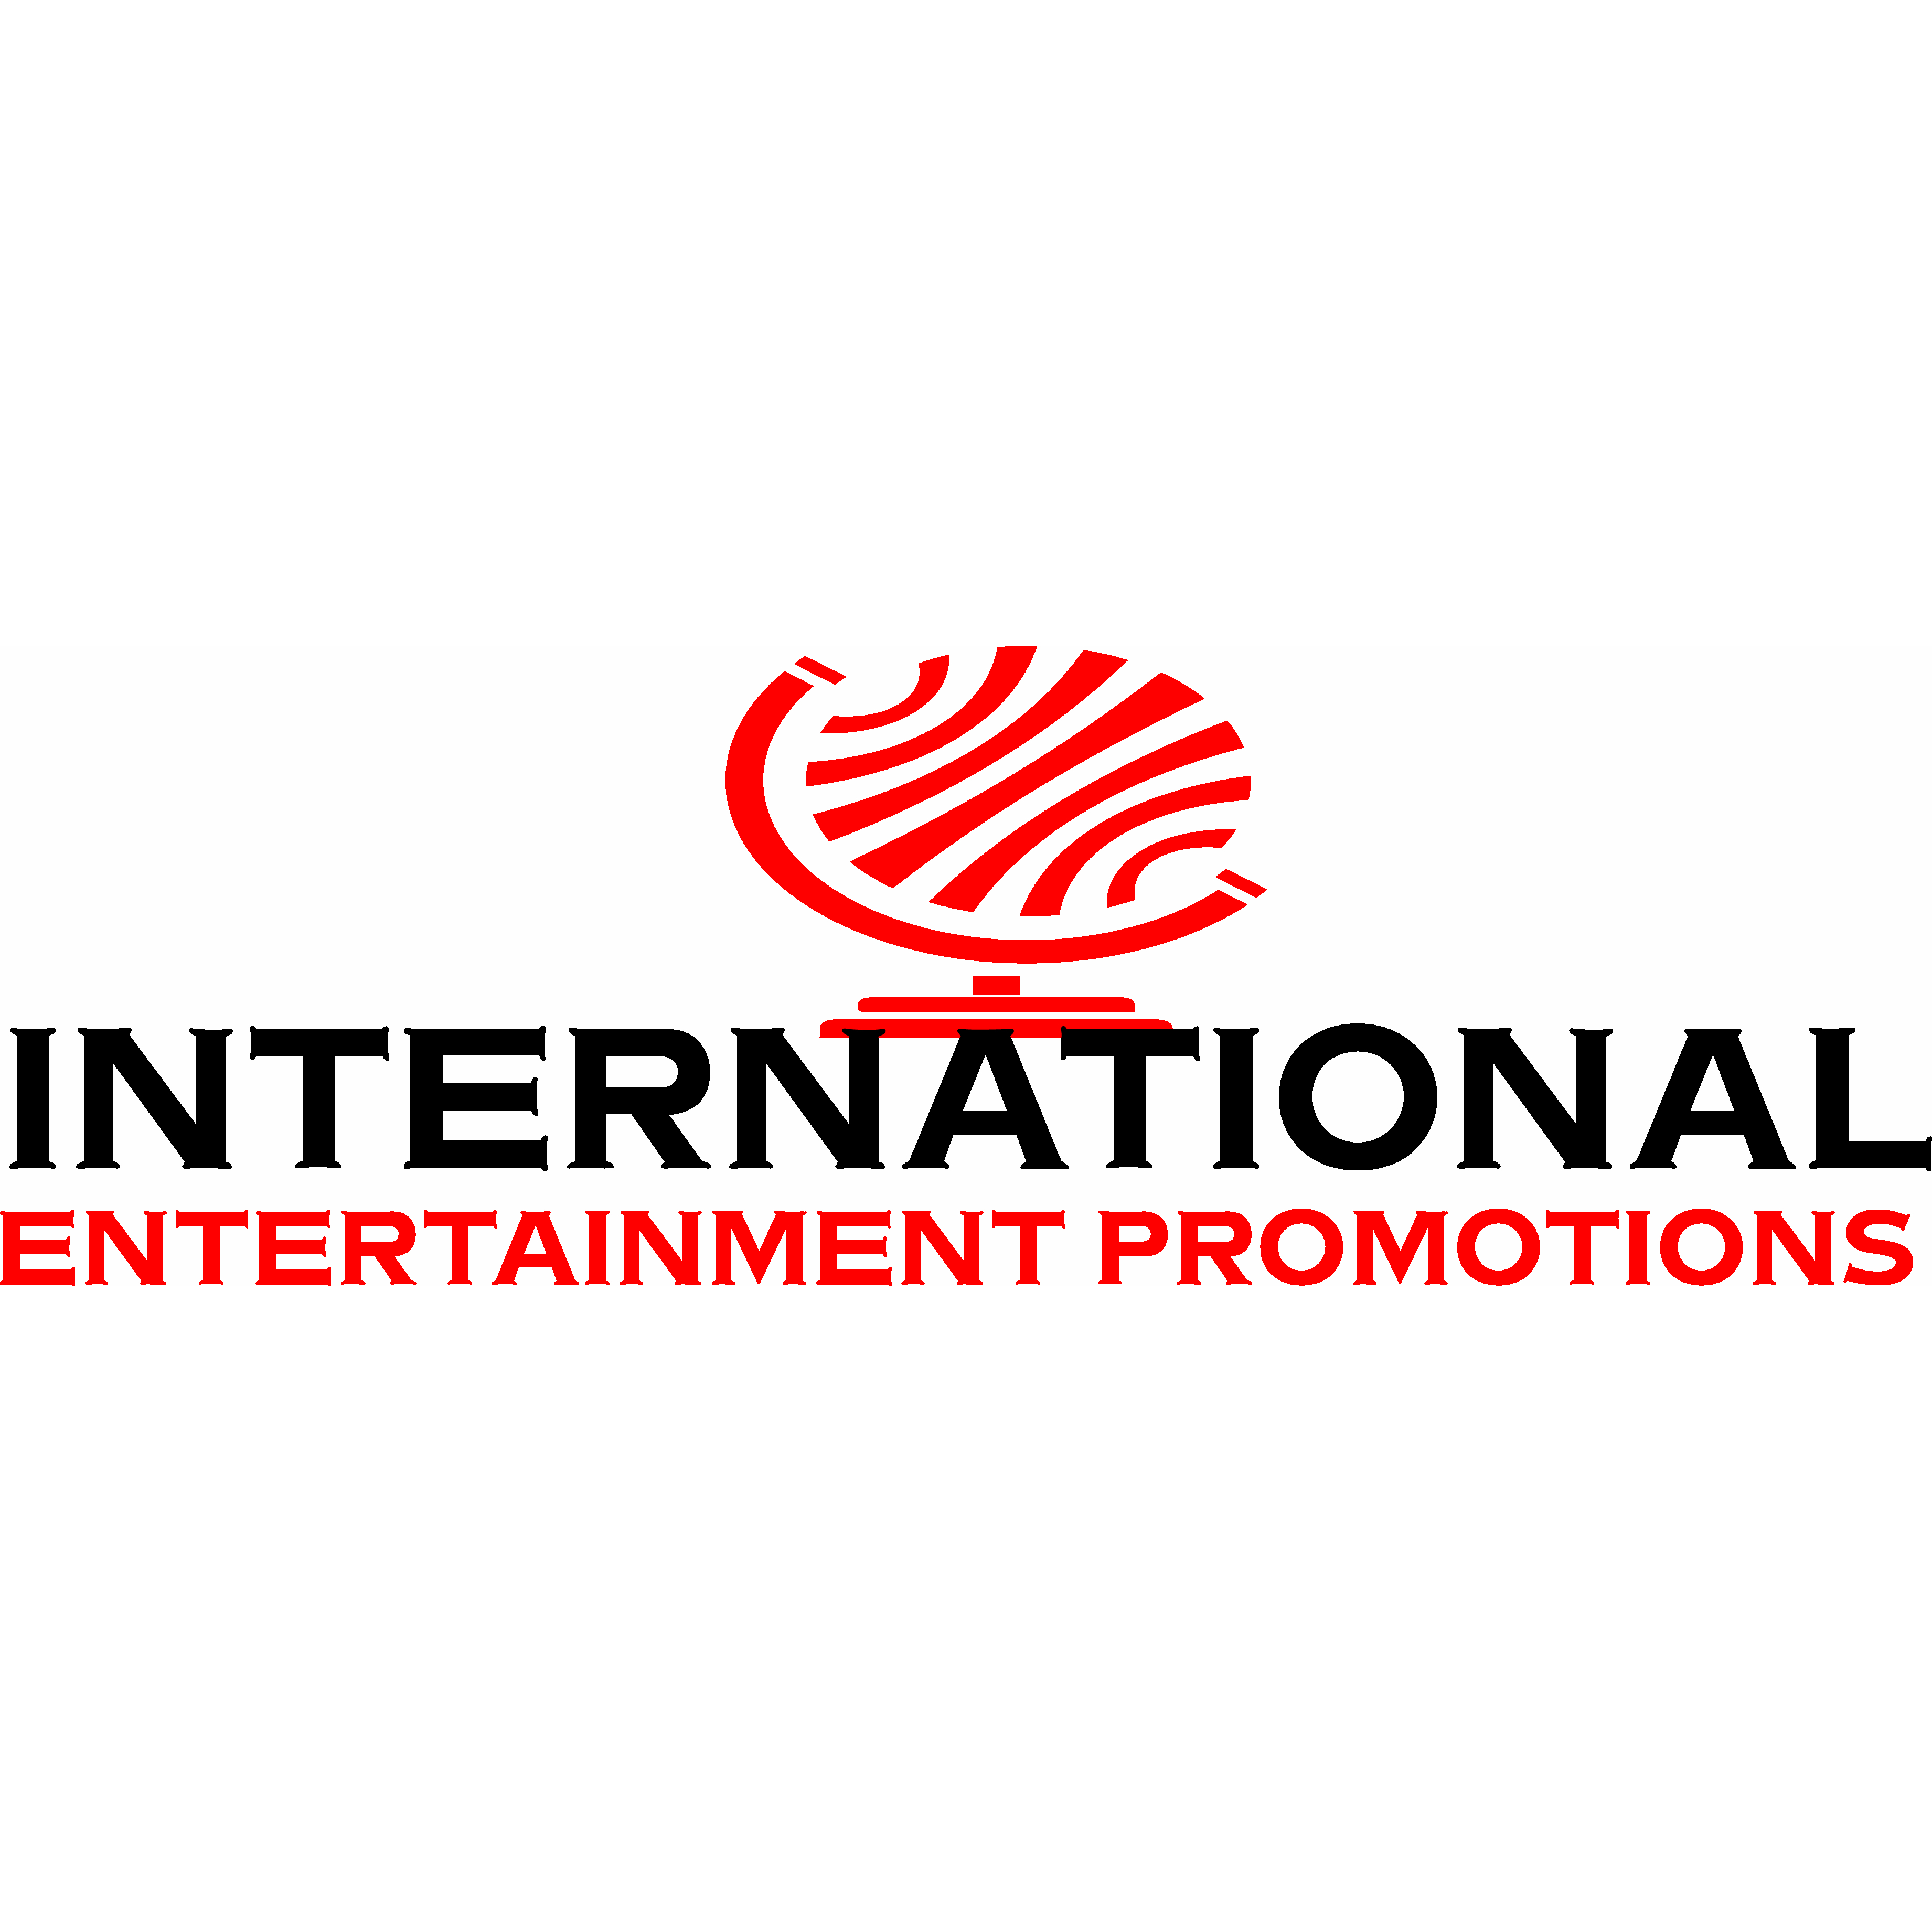 International Entertainment Promotions